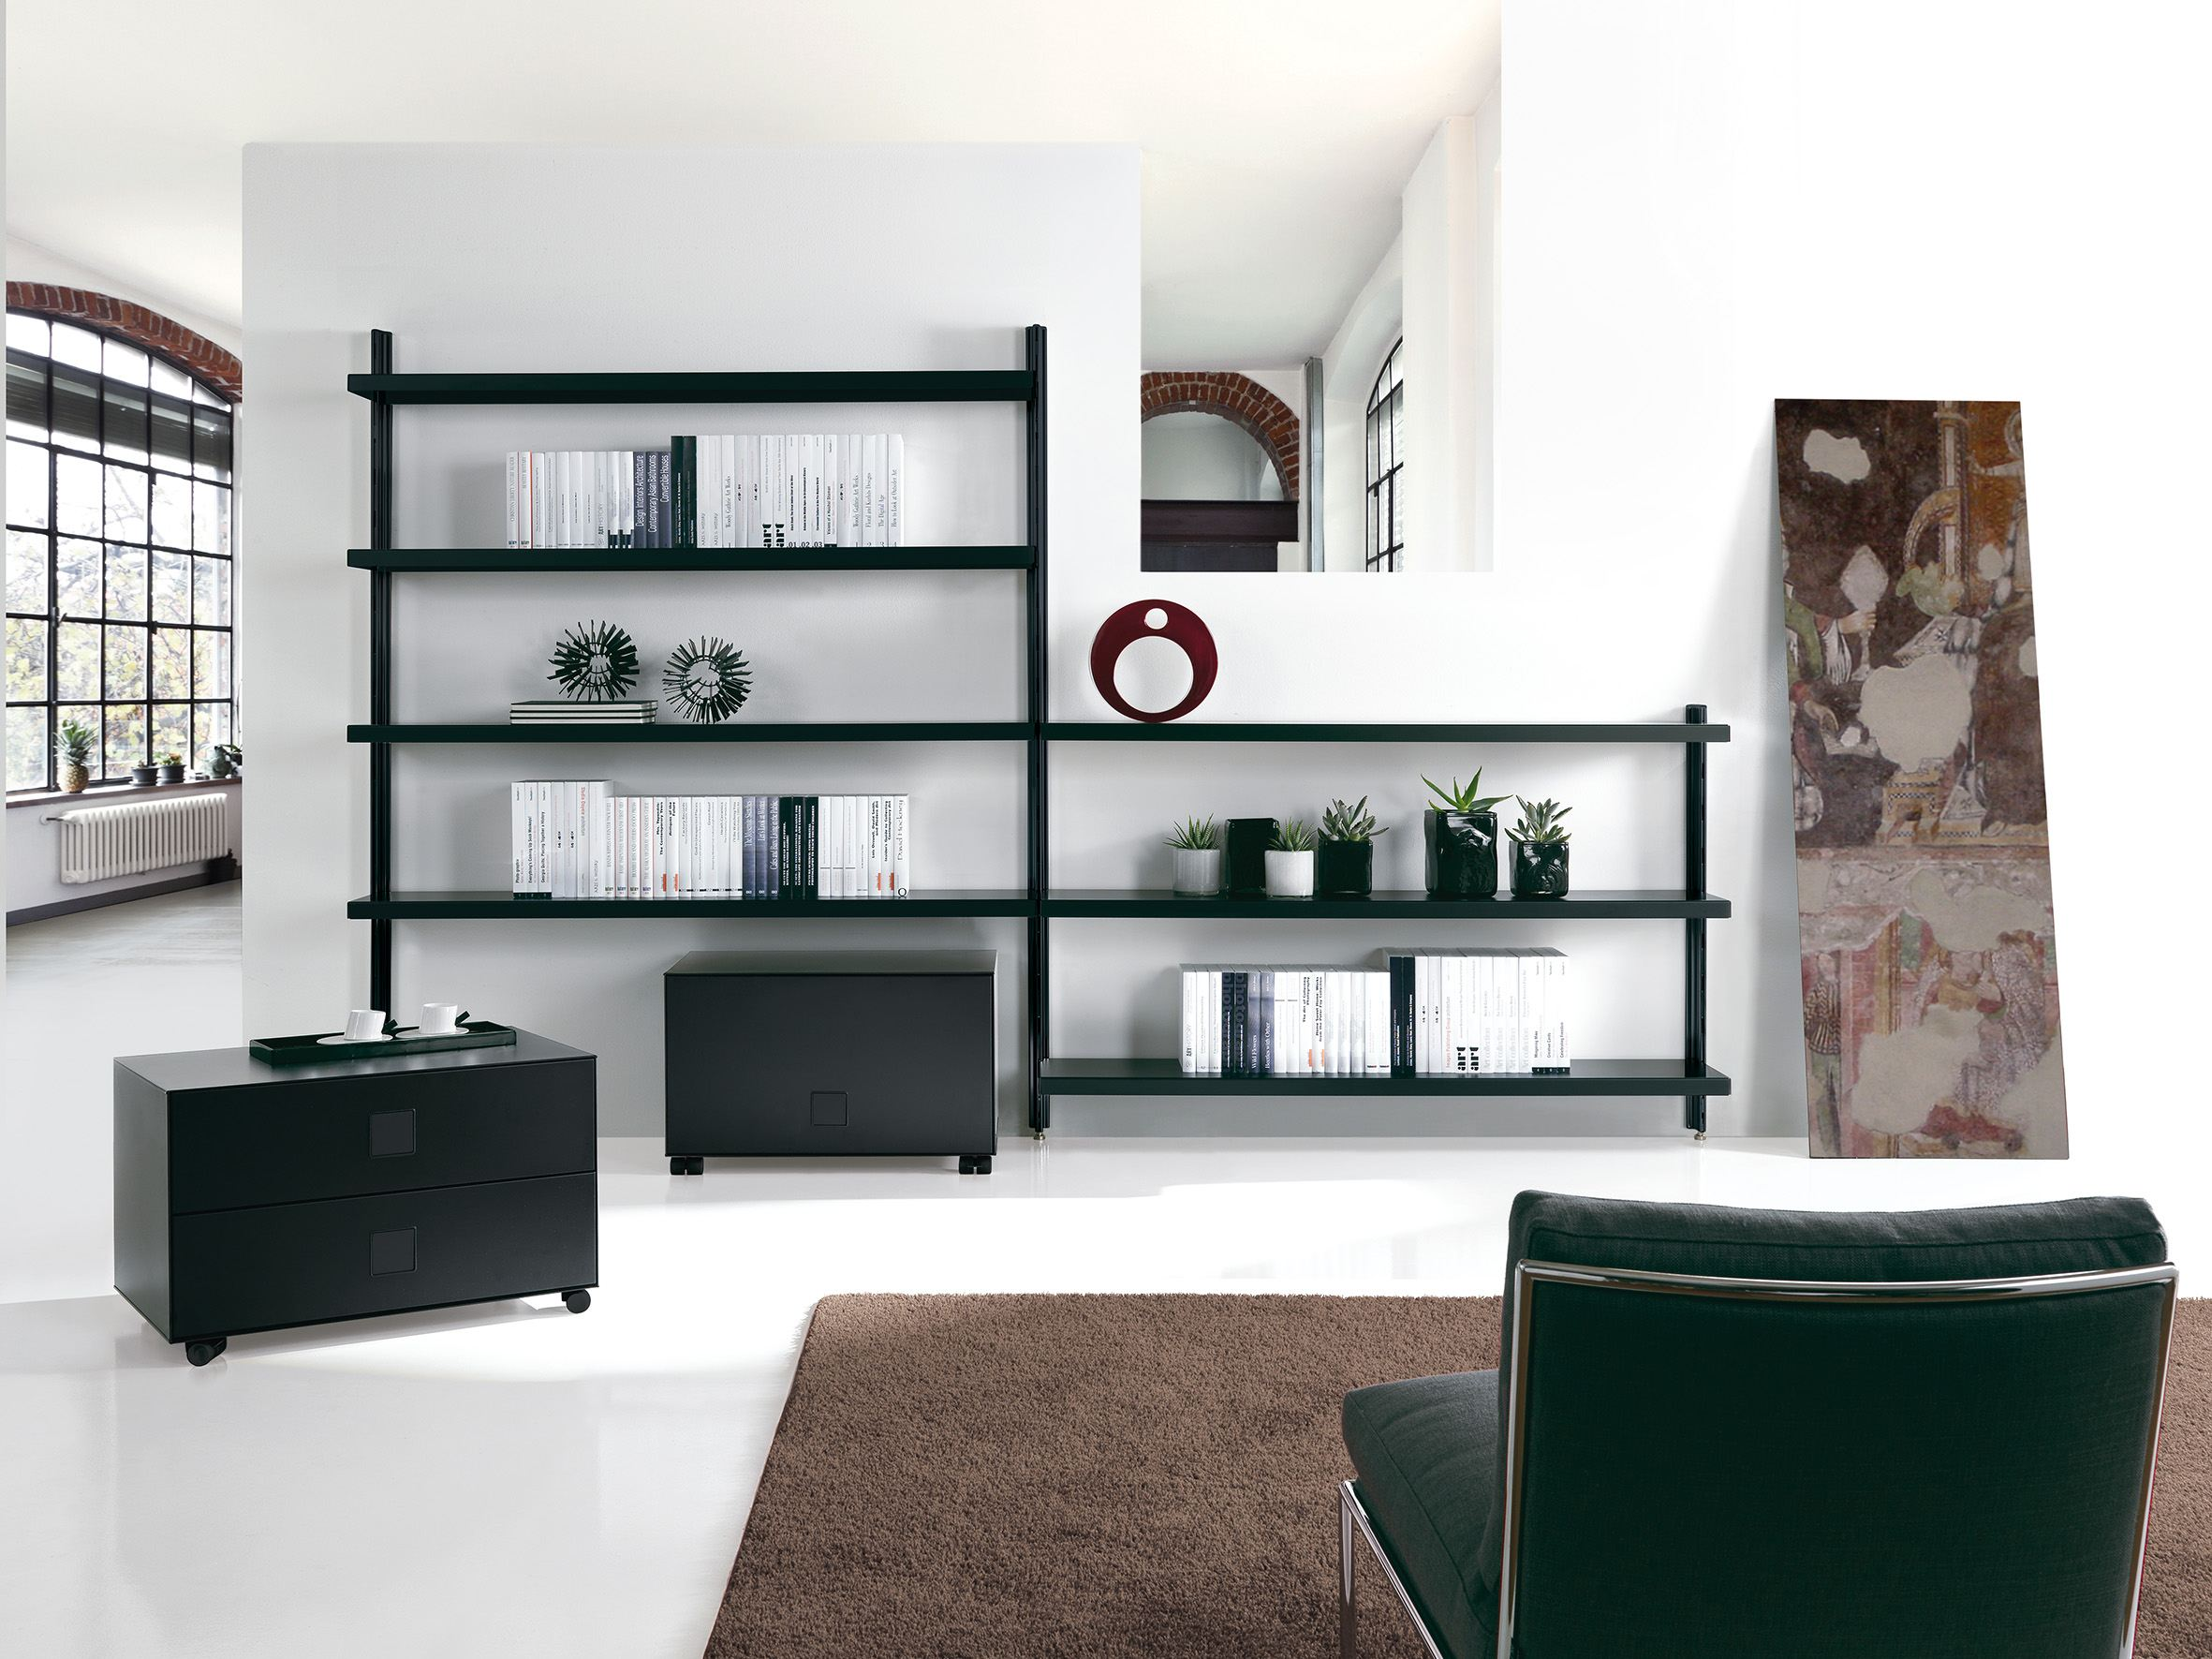 Big home wall mounted bookcase by caimi brevetti design - Wall mounted bookshelf designs ...